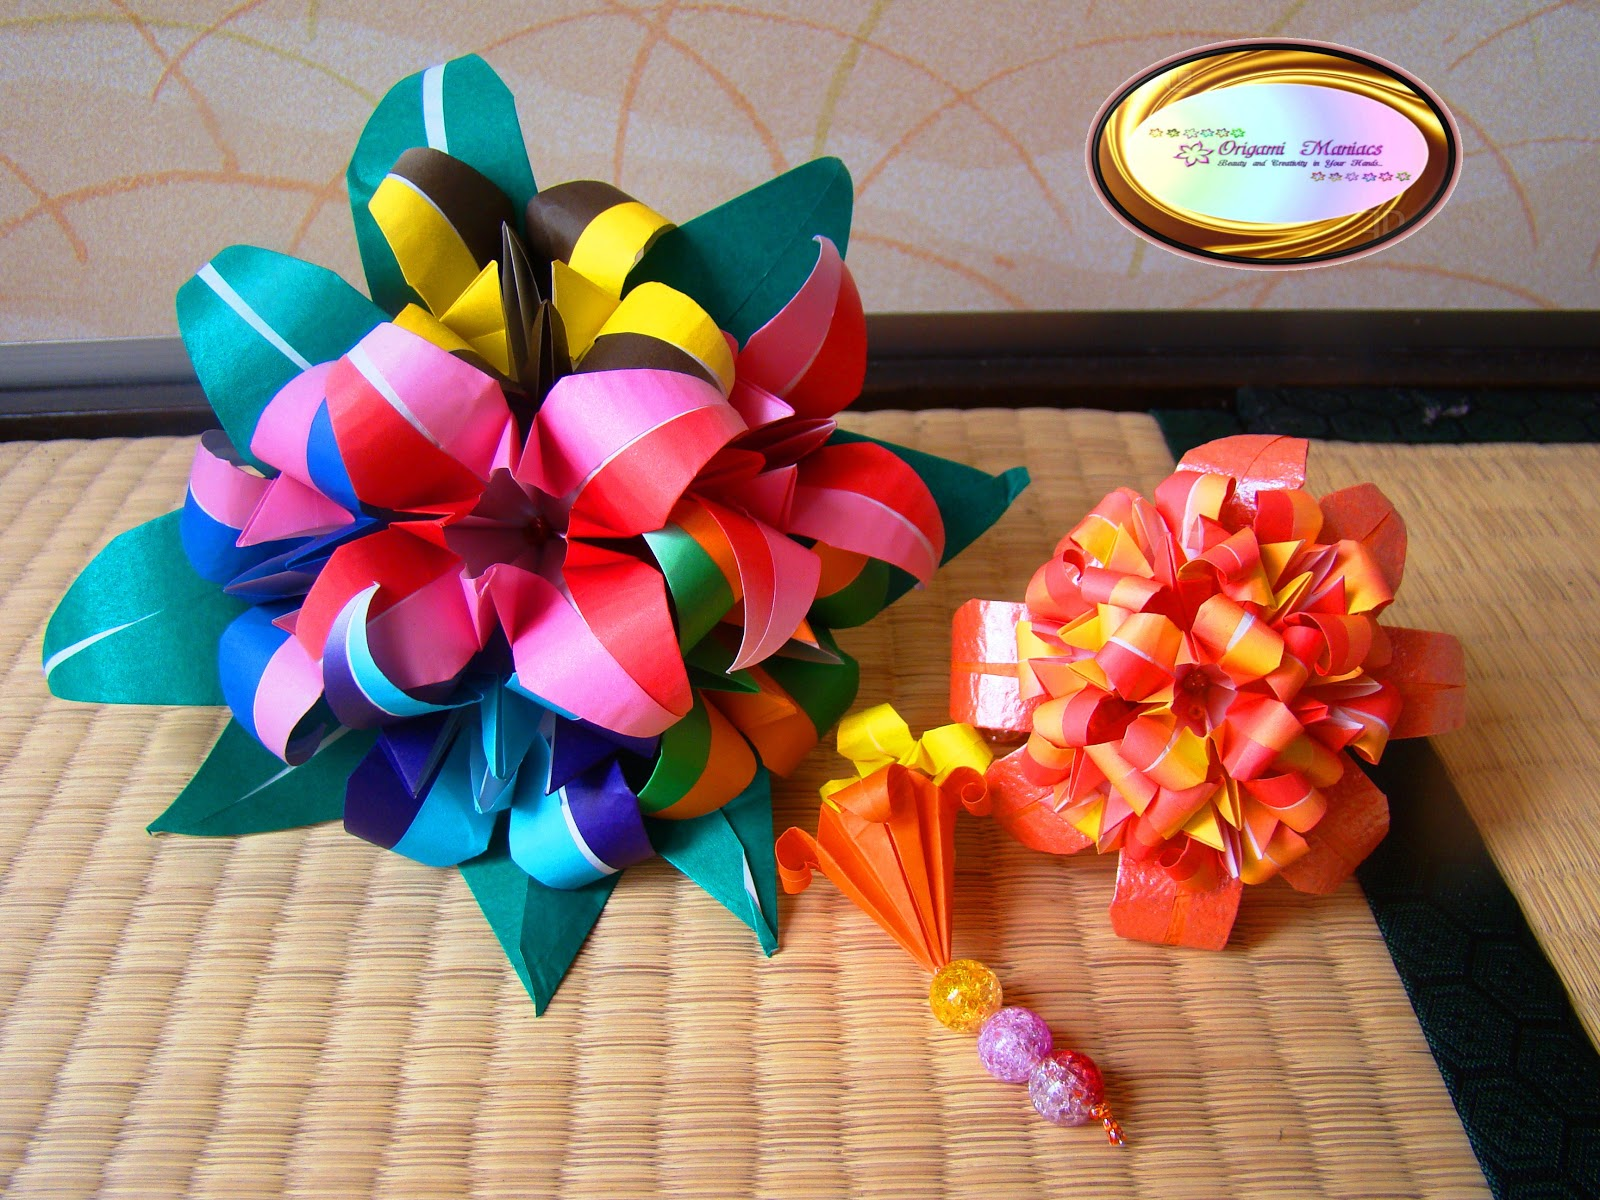 Origami Maniacs Bouquet Of Origami Lilies